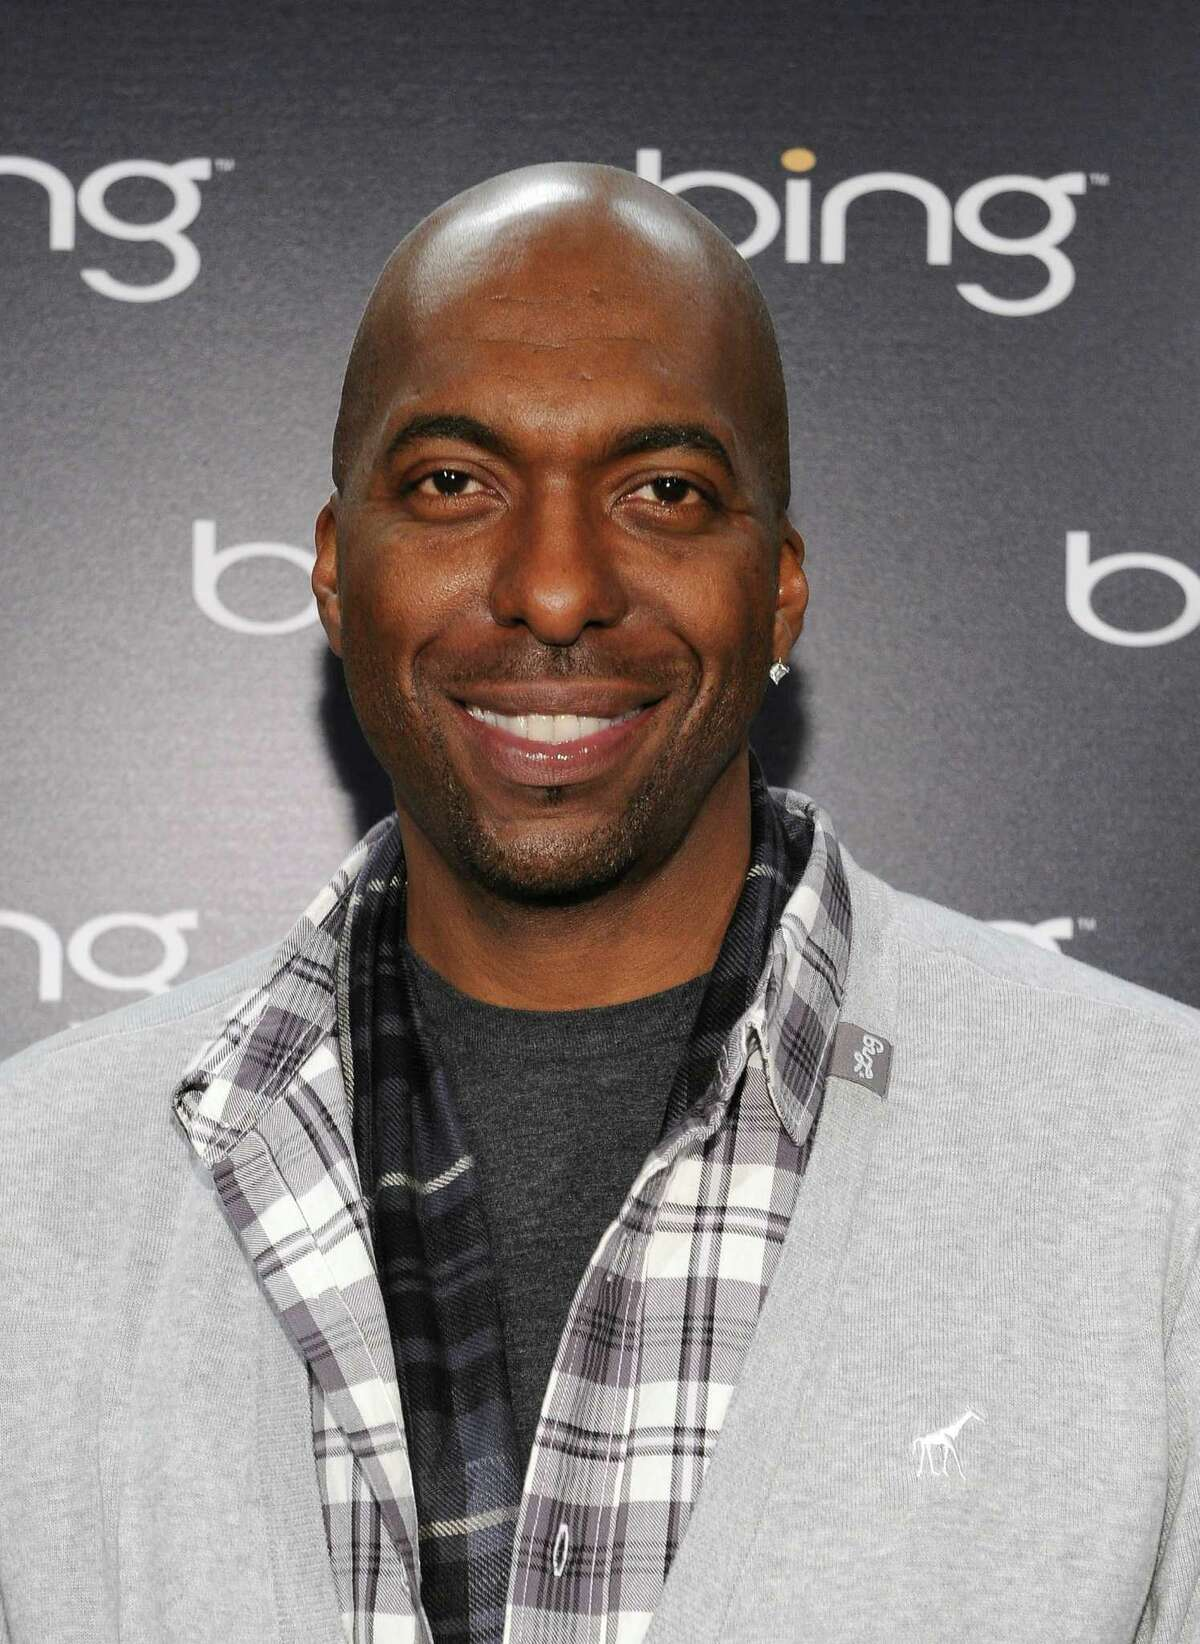 PARK CITY, UT - JANUARY 20: Actor John Salley attends The Soft Opening of The Bing Bar at Sundance 2011 on January 20, 2011 in Park City, Utah.